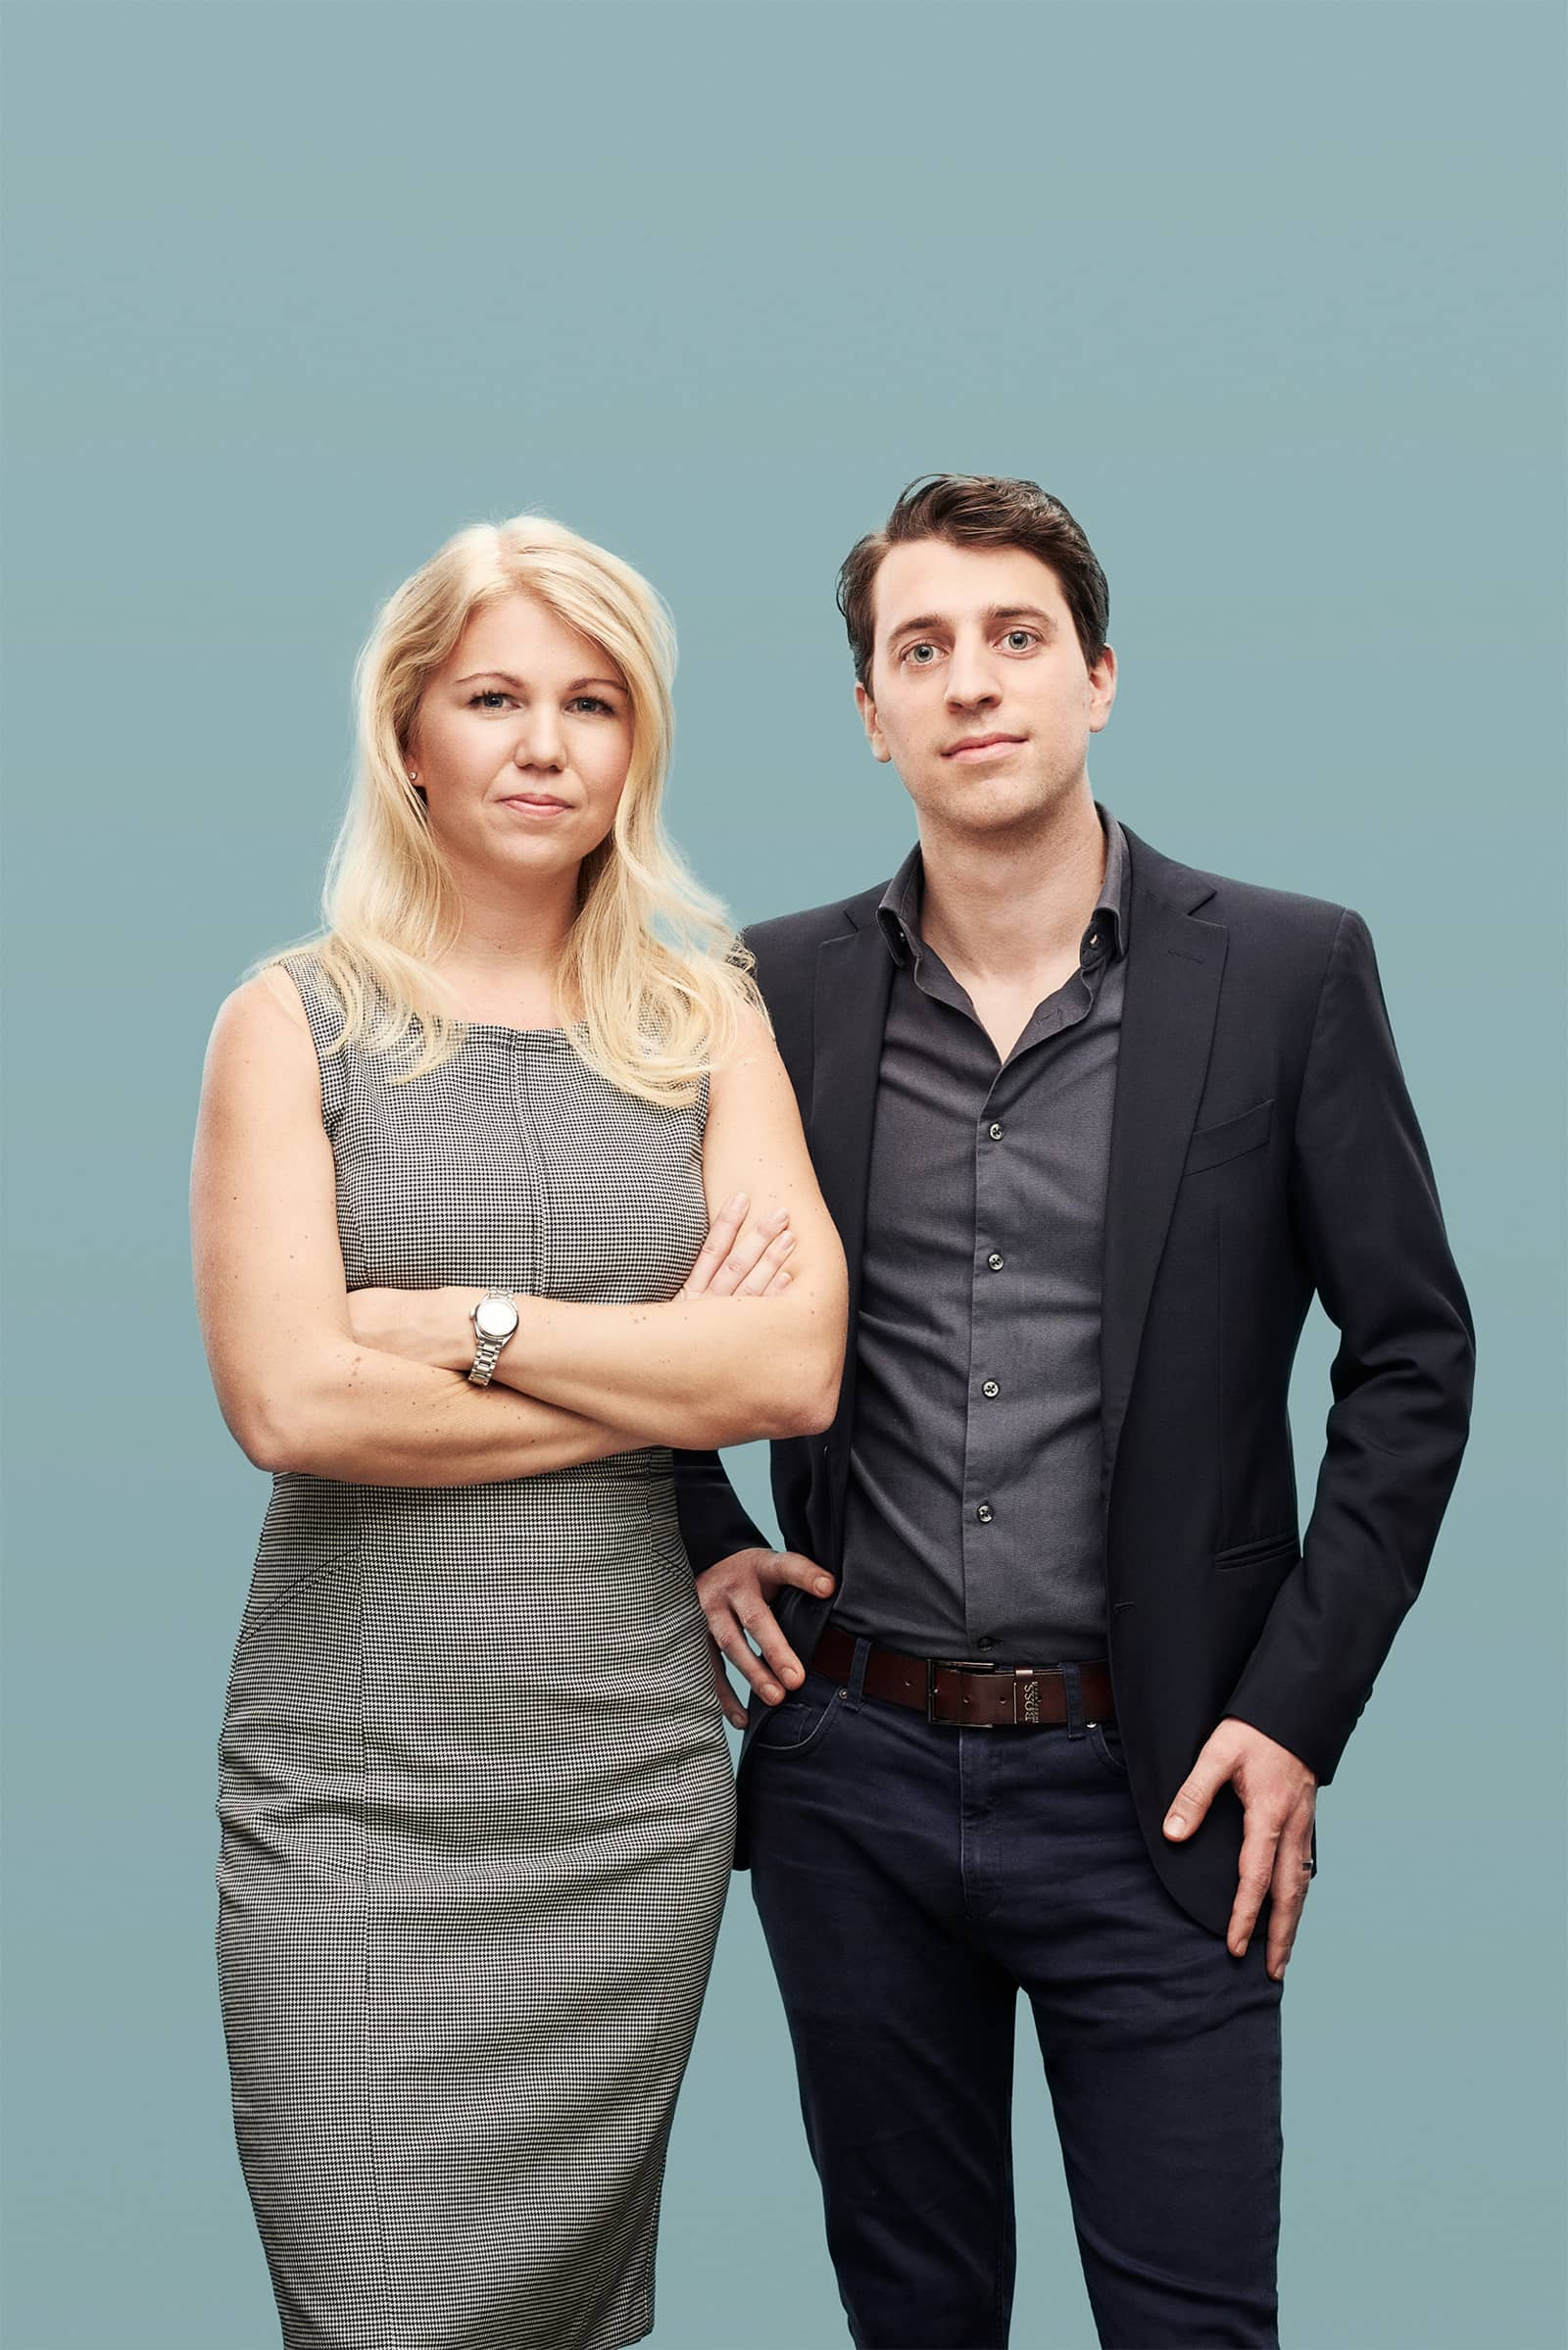 Co-founders of Natural Cycles birth control app Dr. Raoul Scherwitzl and Dr. Elina Berglund.